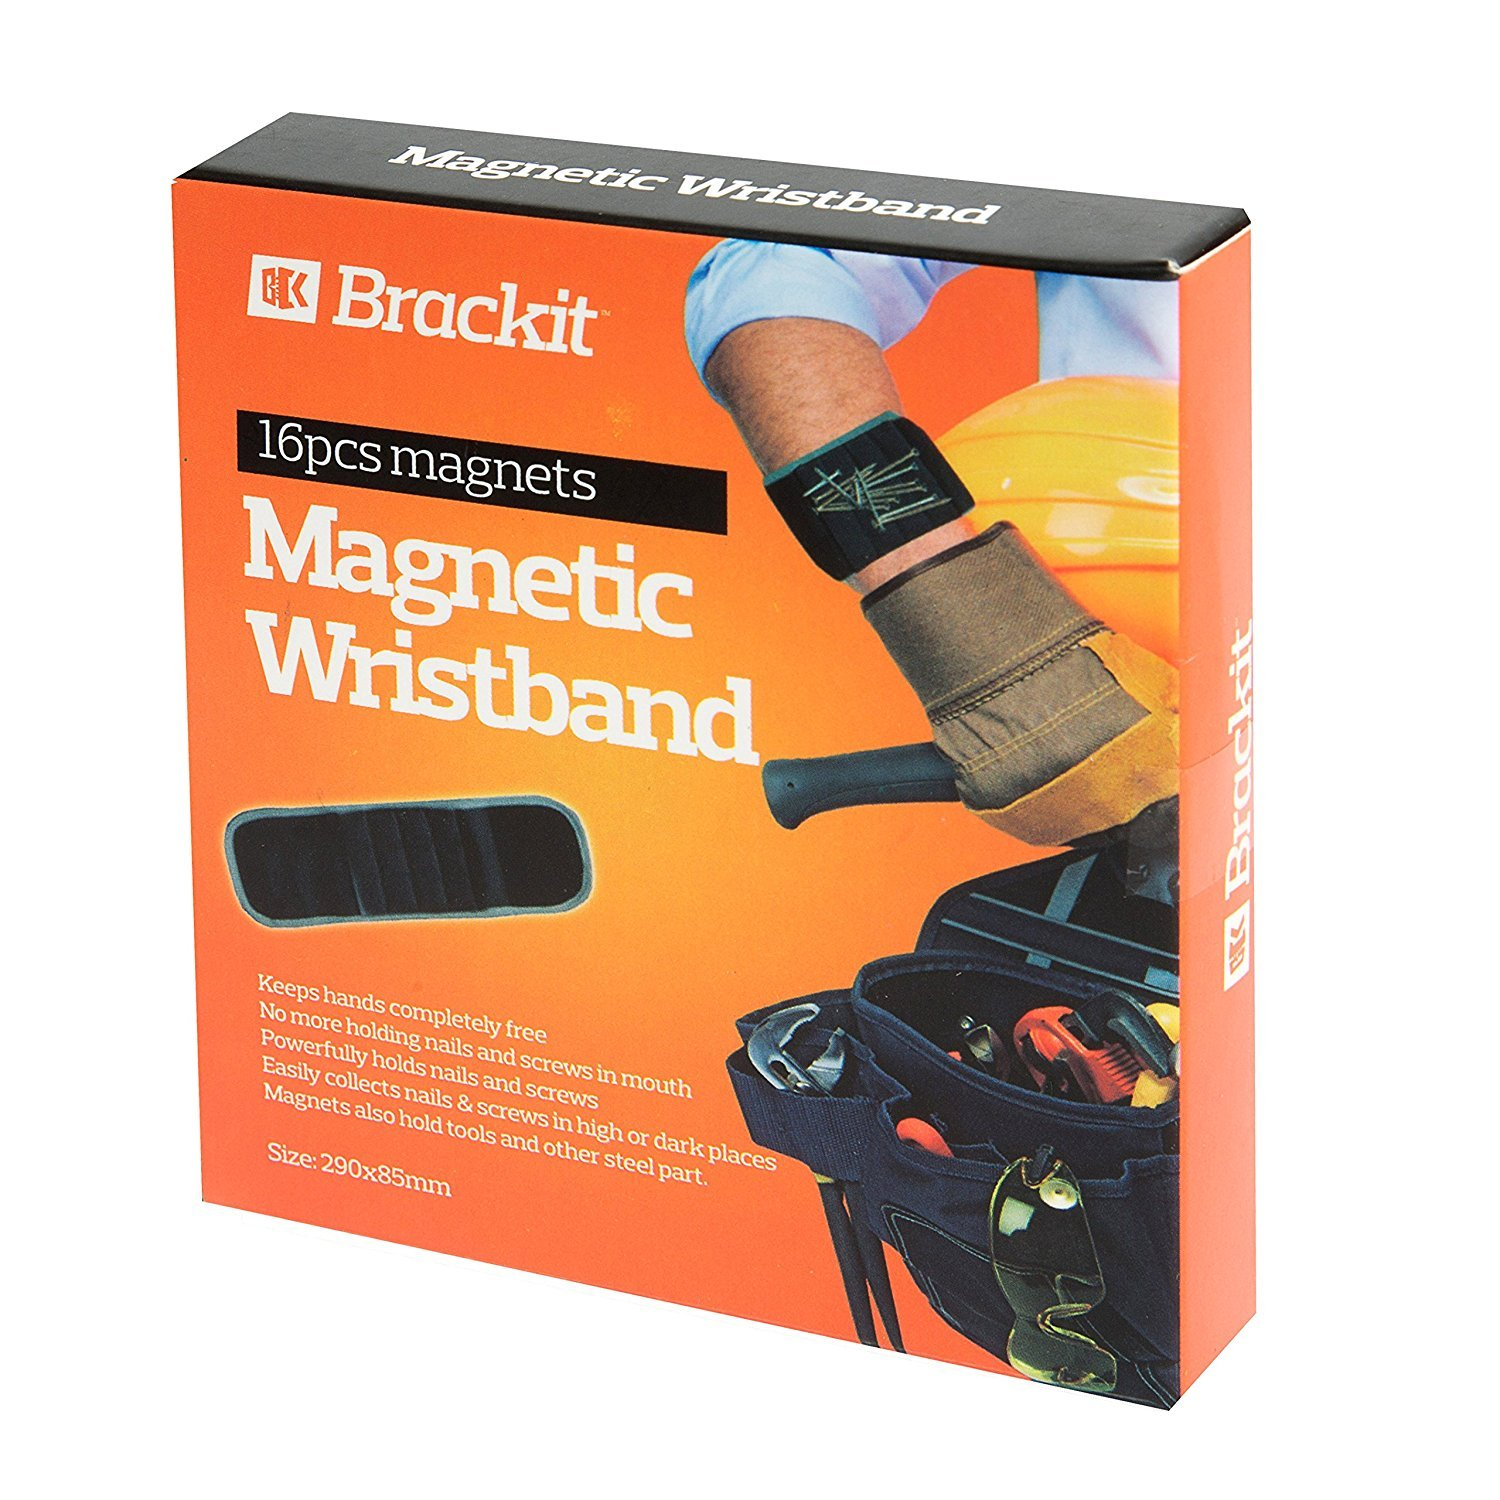 Brackit Magnet Wristband Tool | Adjustable Tool Wrist Bands for Screws, Nails, Nuts, Bolts & More | Premium Magnetic Screw & Nail Wristband for Carpenters, Builders, Roofers, Auto Mechanics (Black)